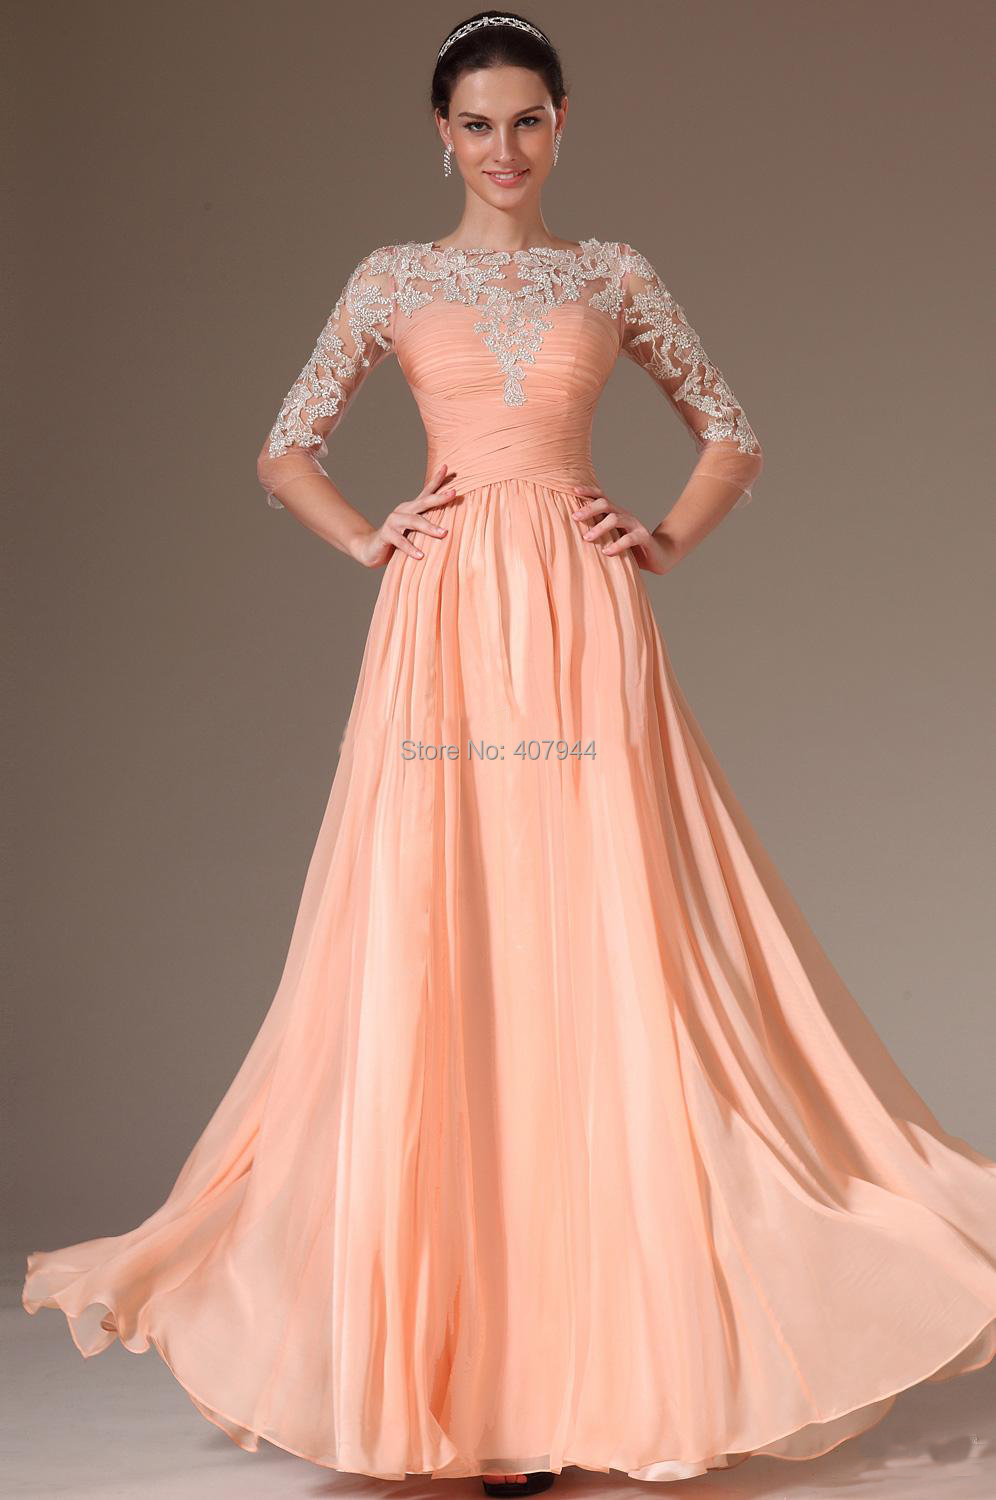 Long Flowy Prom Dresses | Cocktail Dresses 2016